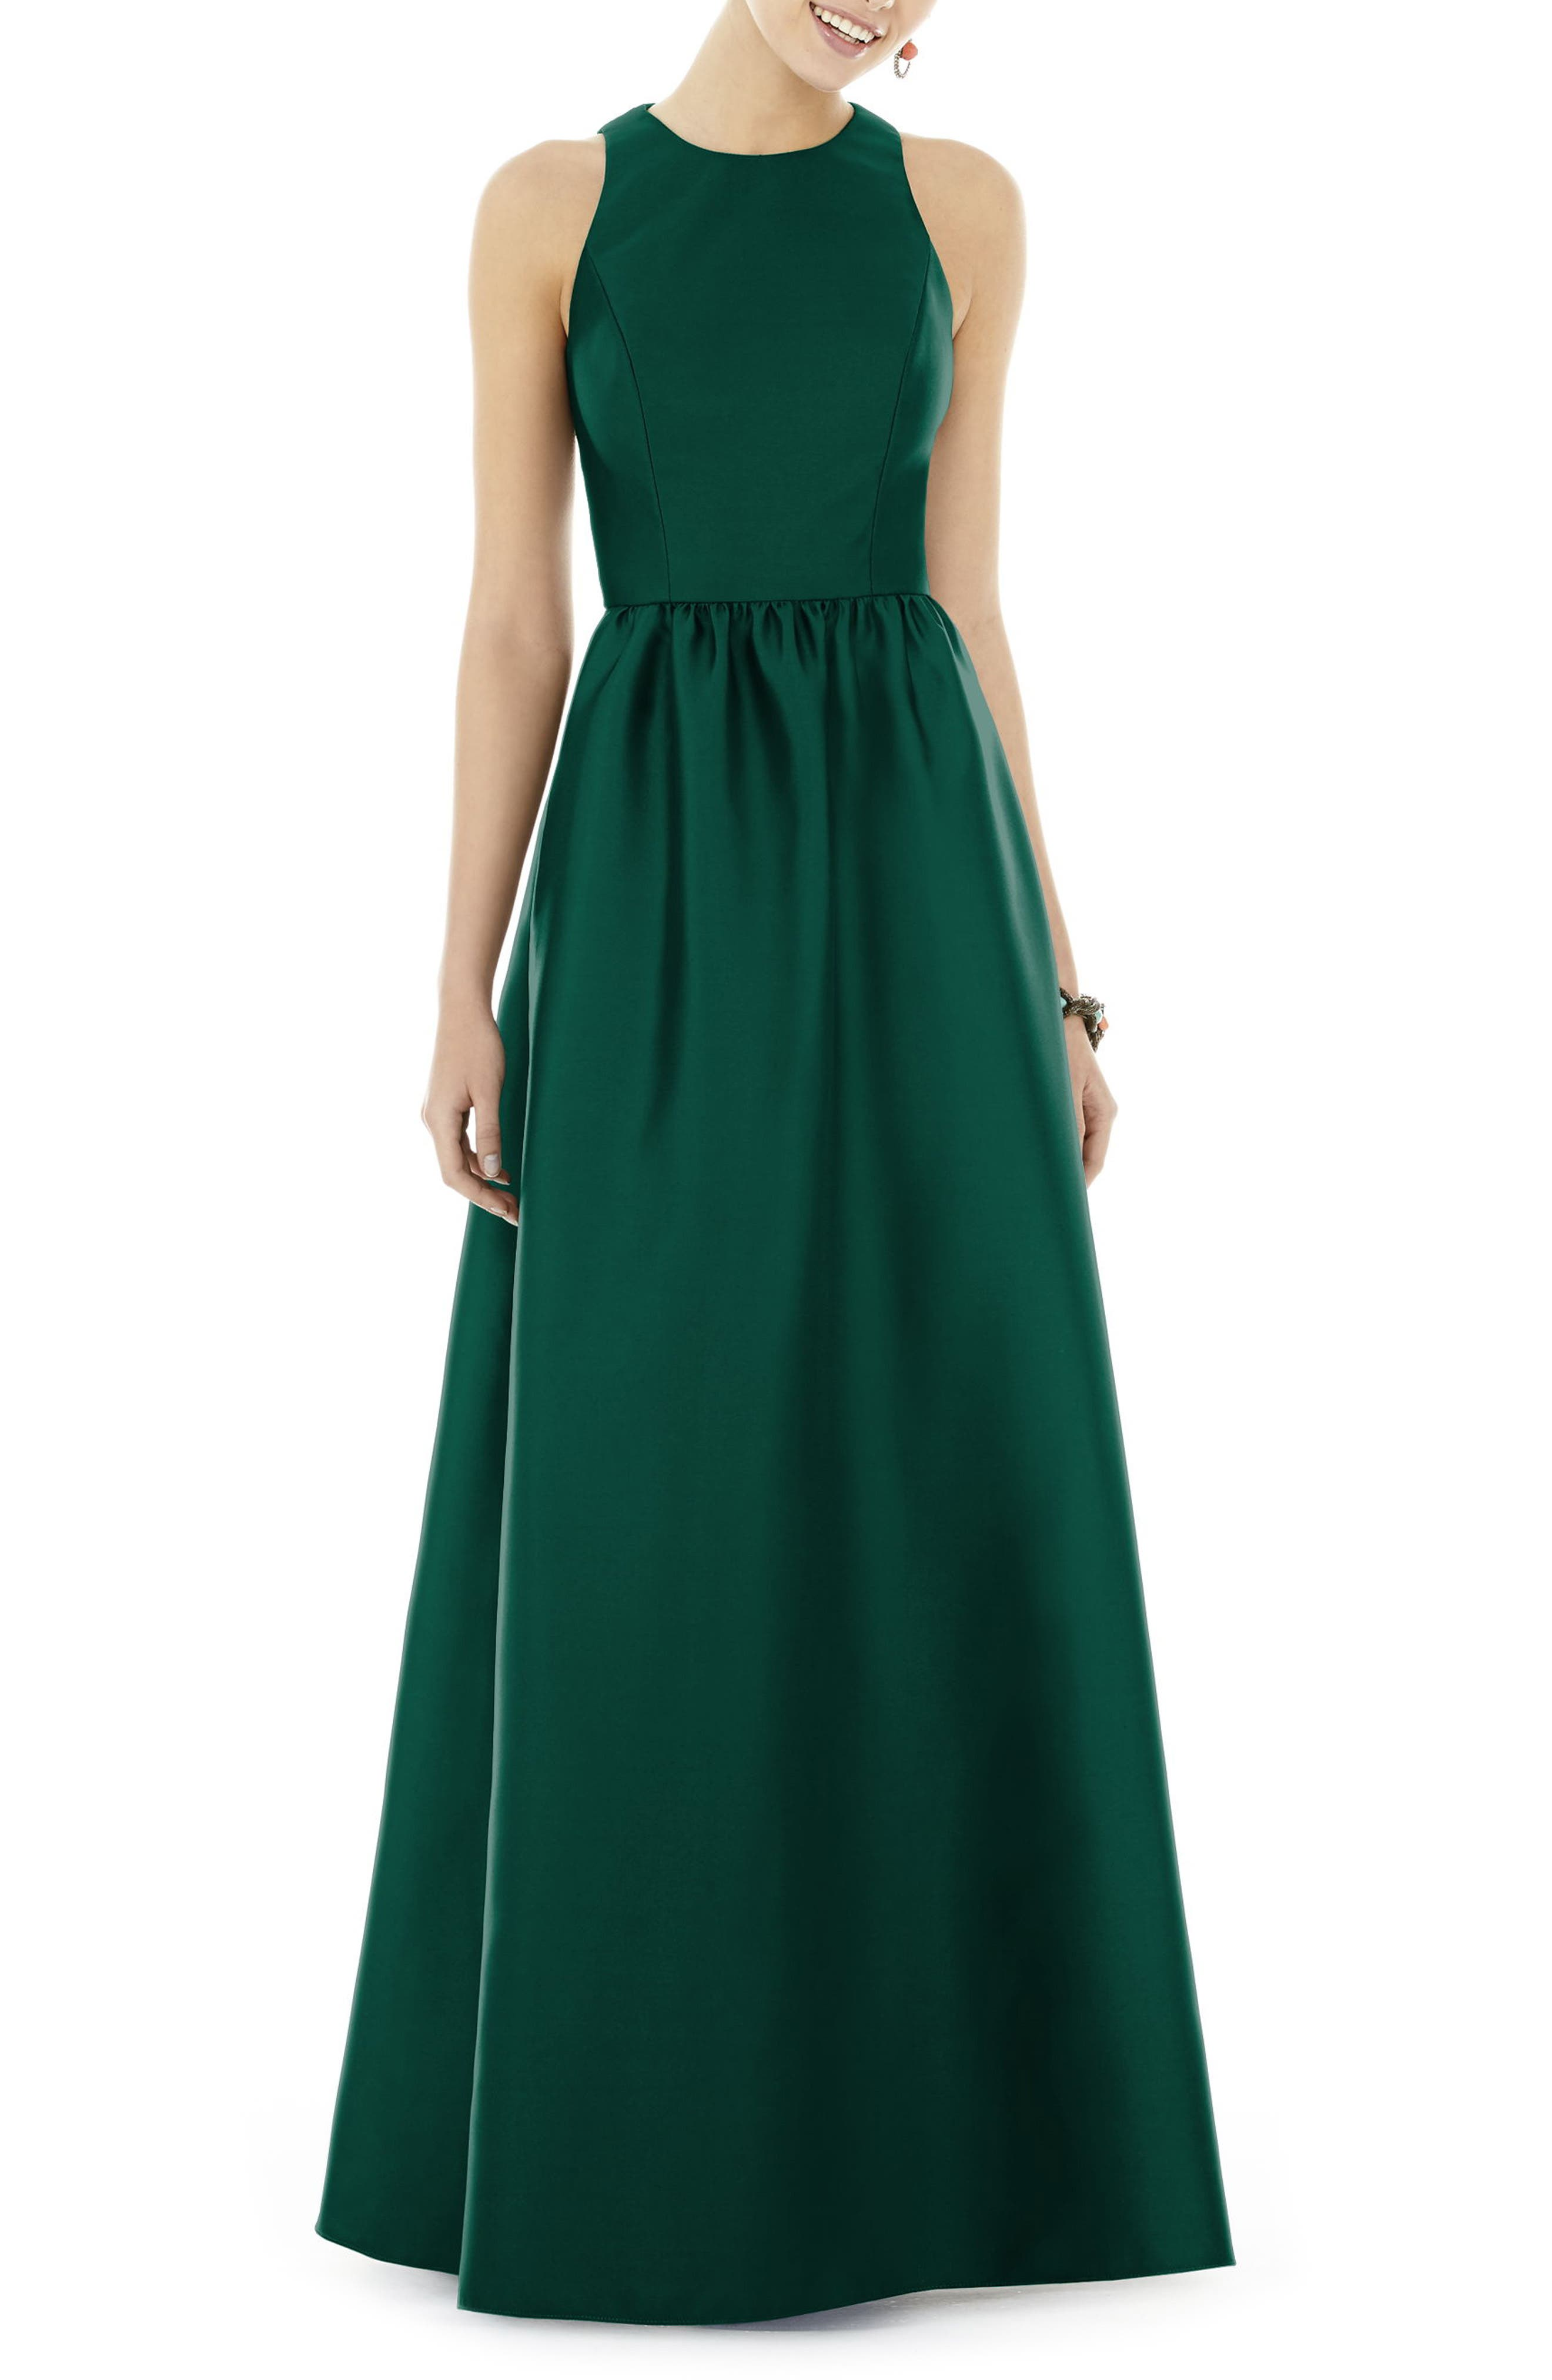 ALFRED SUNG Sateen Gown, Main, color, HUNTER